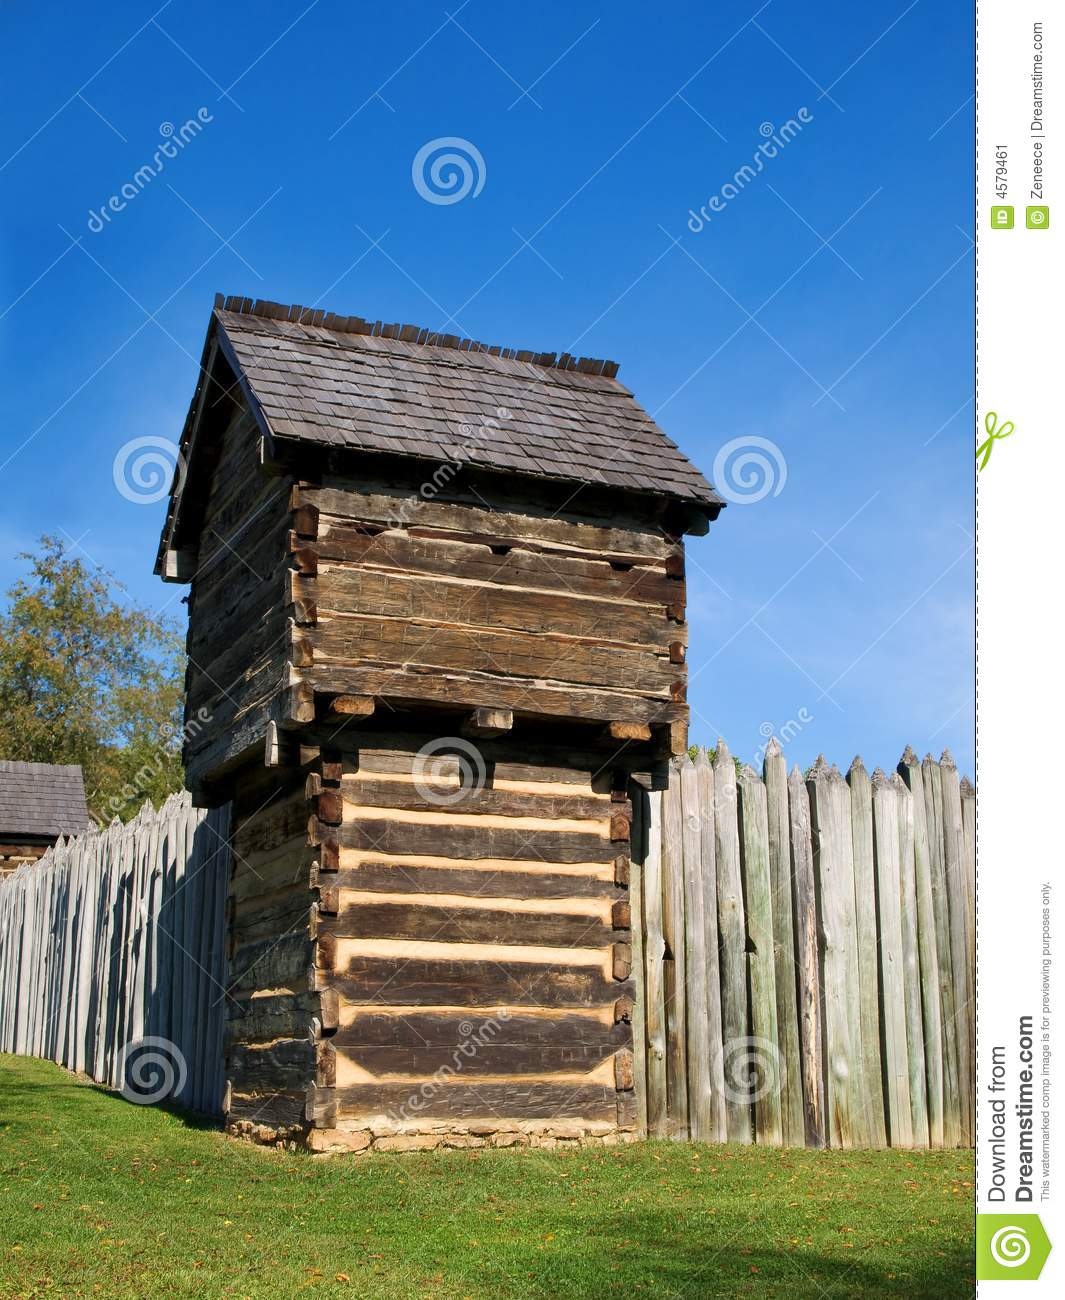 Old wooden fort stock image image 4579461 for Old wooden forts